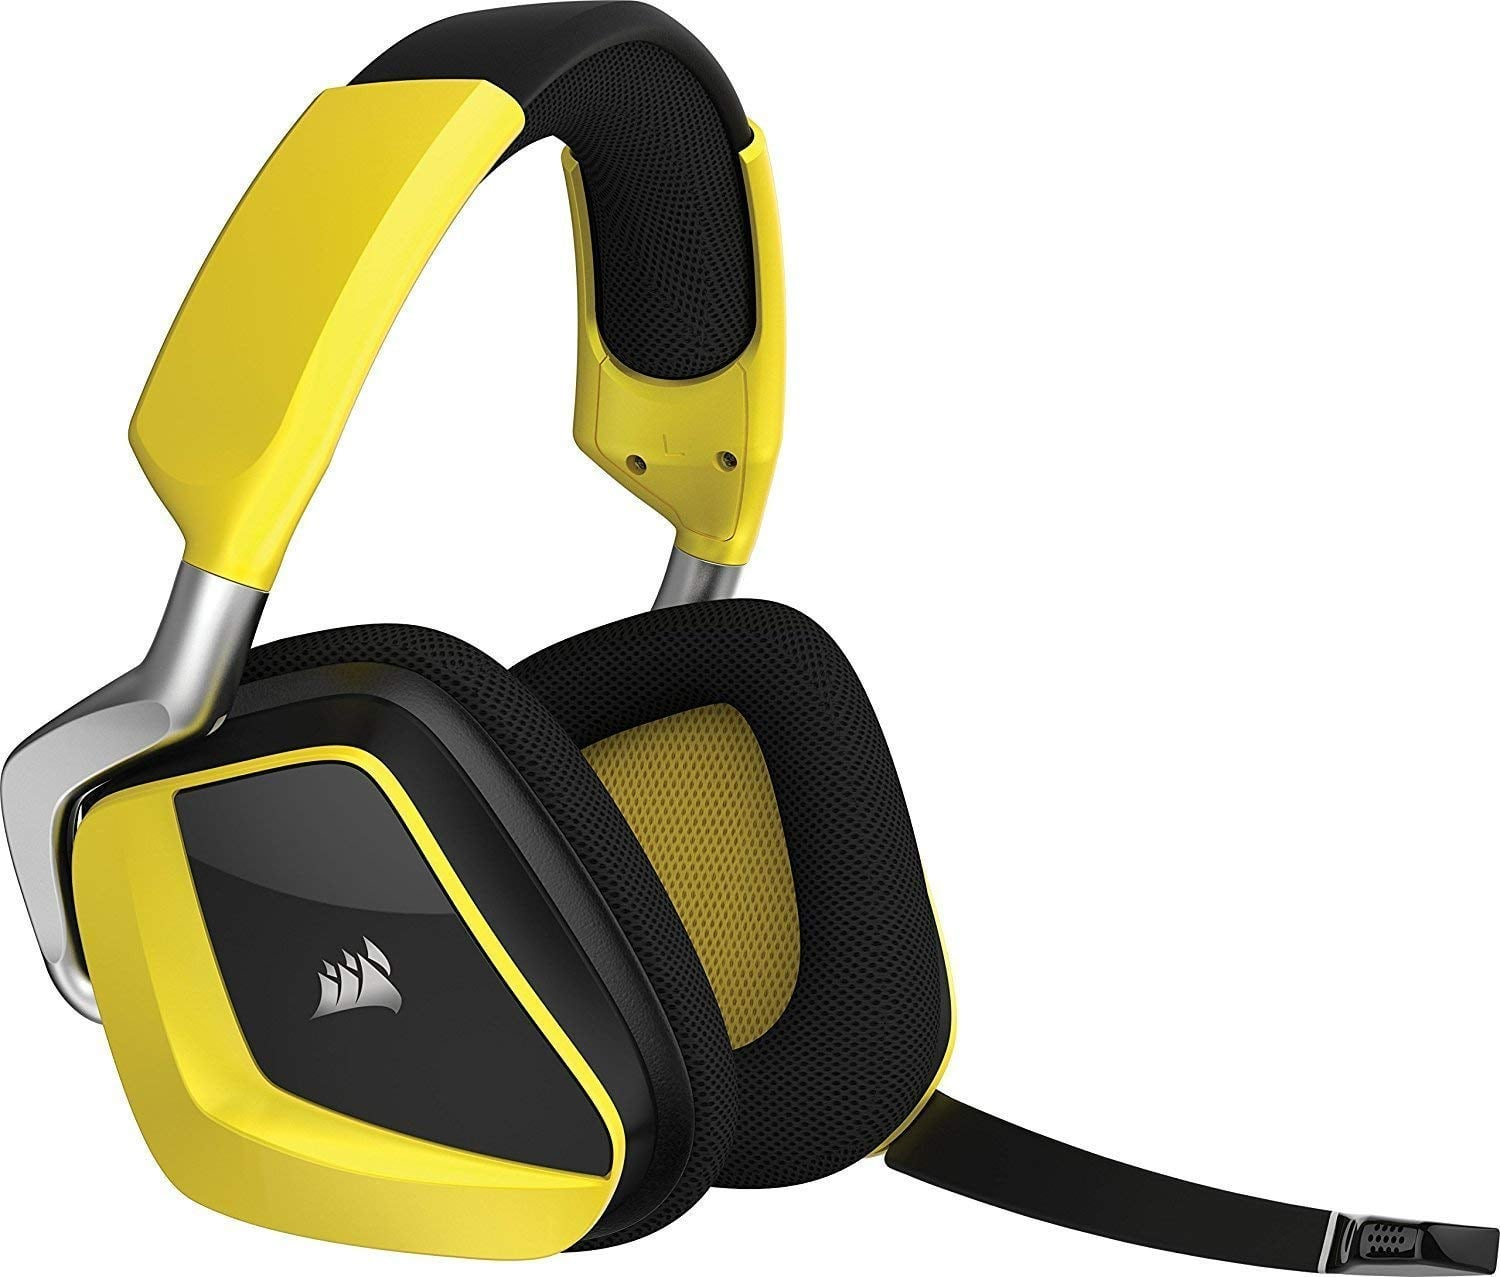 32a873ab2d4 CORSAIR Void PRO RGB Wireless Gaming Headset - Dolby 7.1 Surround Sound  Headphones for PC - Discord - 50mm Drivers - Yellow (Renewed) $54.99